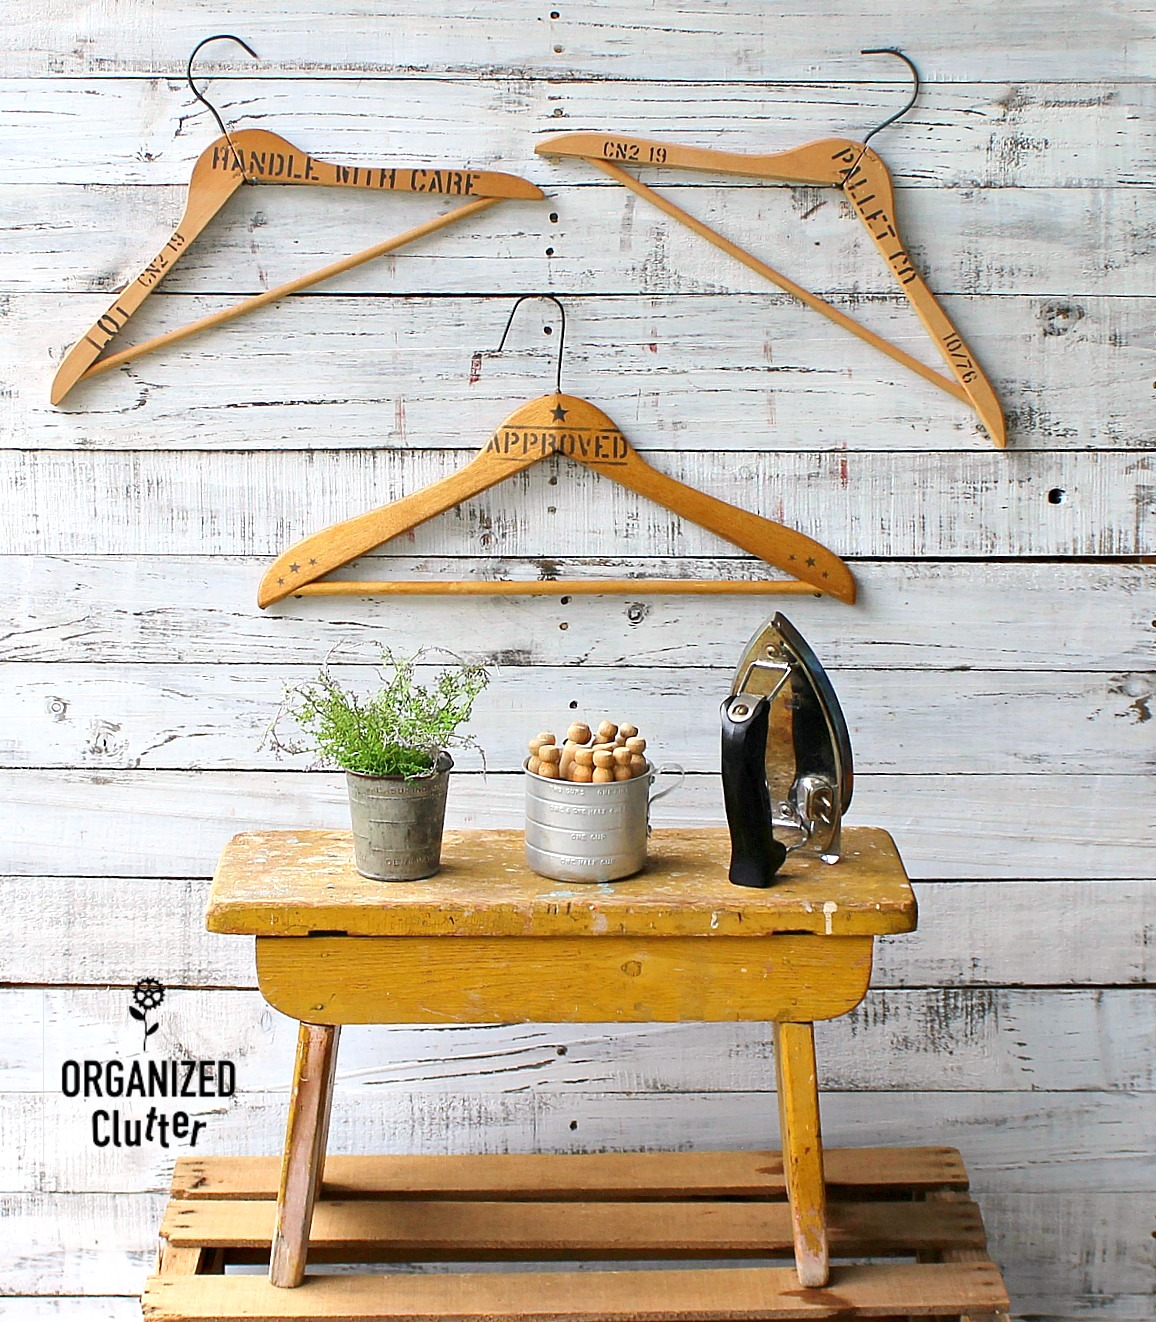 Crate stenciled vintage wooden laundry hangers by Organized Clutter, featured on Funky Junk Interiors